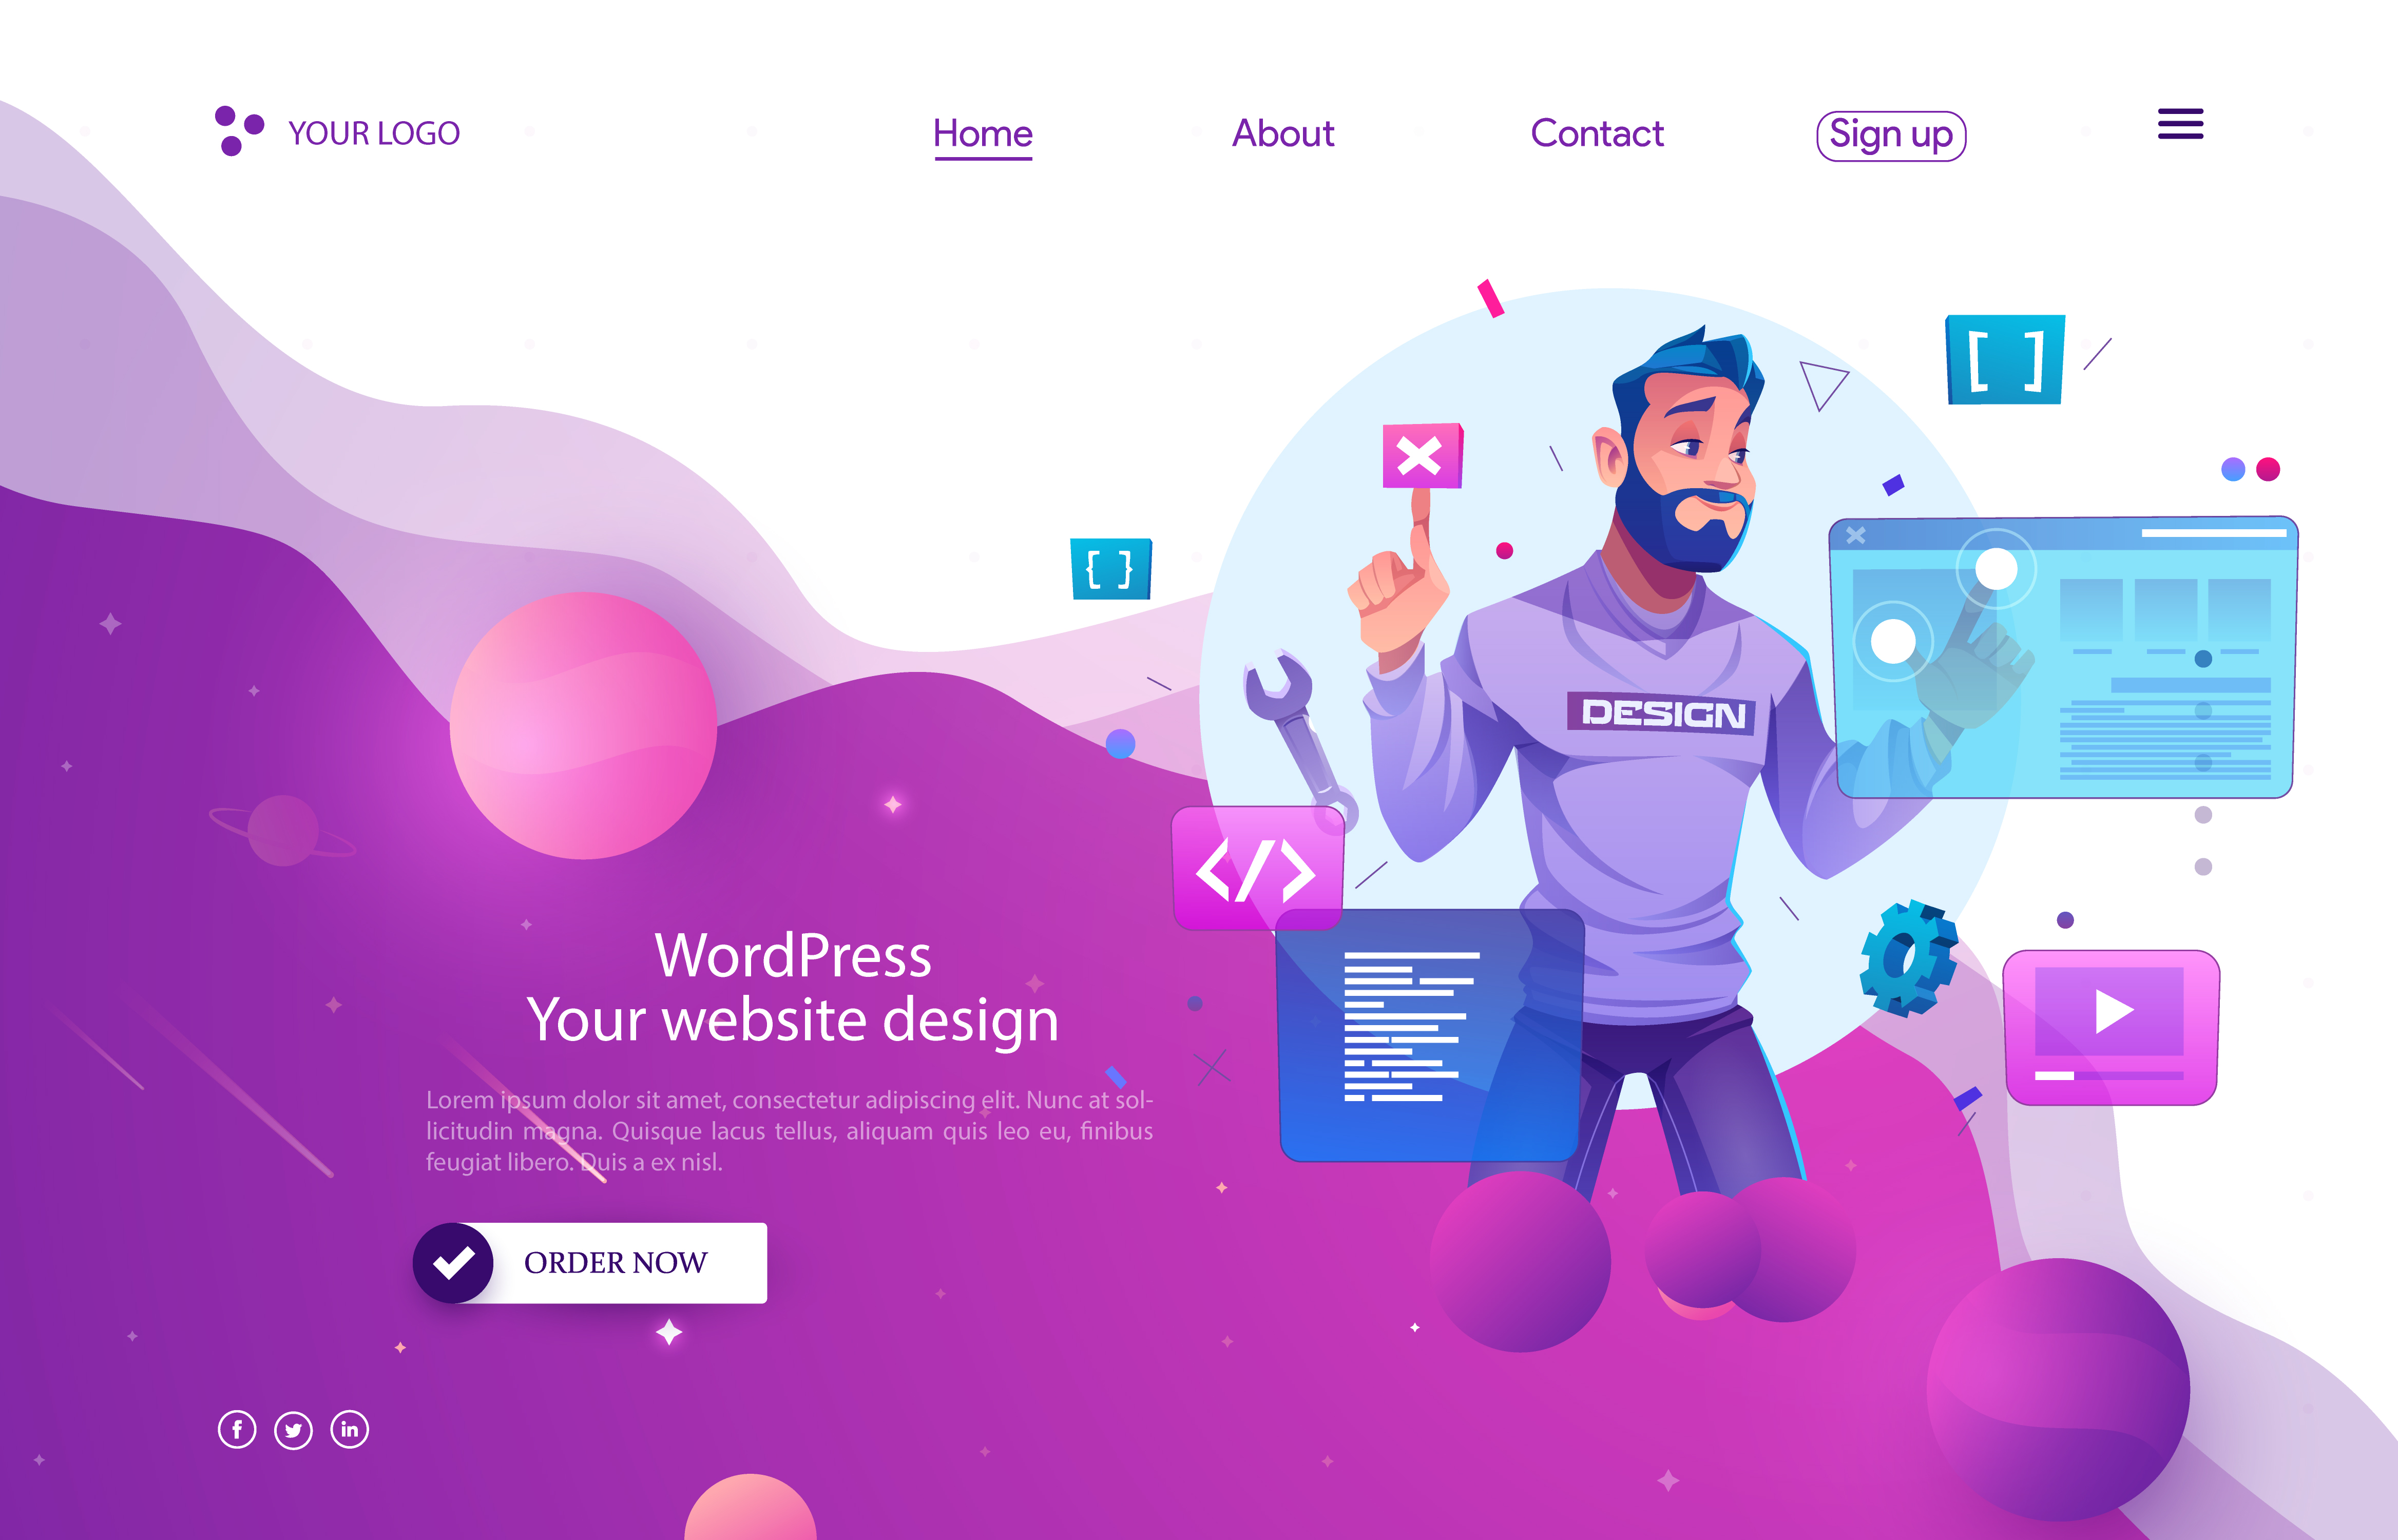 I will create a landing page design by WordPress